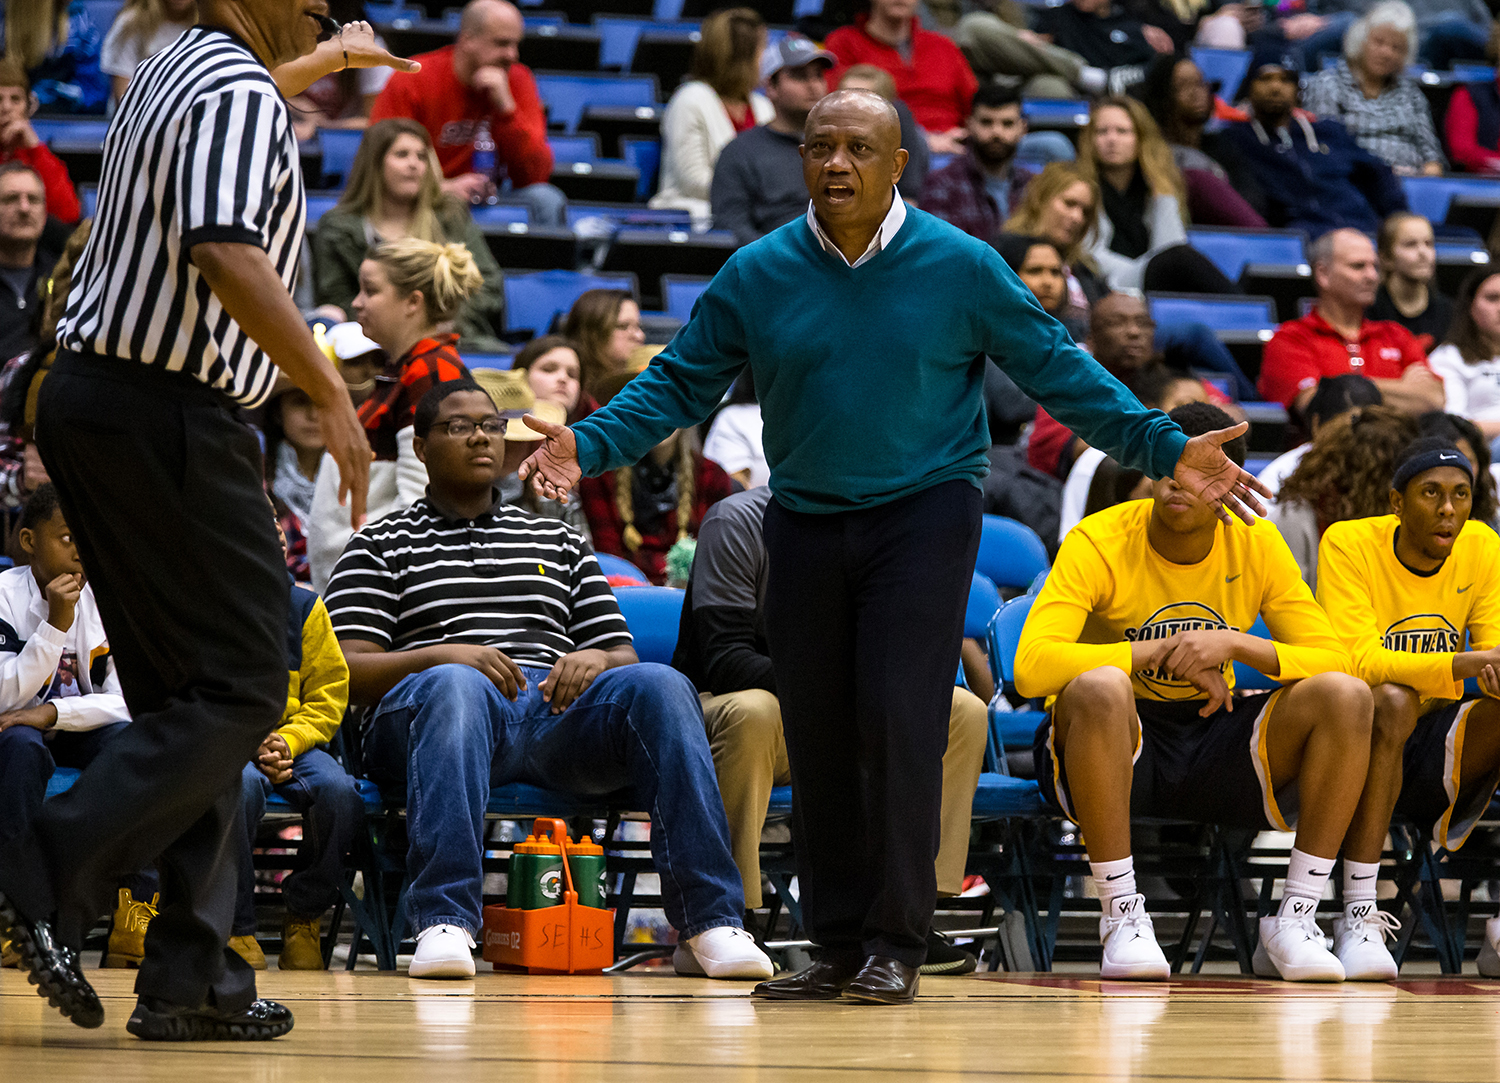 Southeast boys basketball head coach Lawrence Thomas calls out for a foul call against Lanphier as the Spartans take on the Lions in the second quarter on opening night of the Boys City Tournament at the Bank of Springfield Center, Wednesday, Jan. 16, 2019, in Springfield, Ill. [Justin L. Fowler/The State Journal-Register]